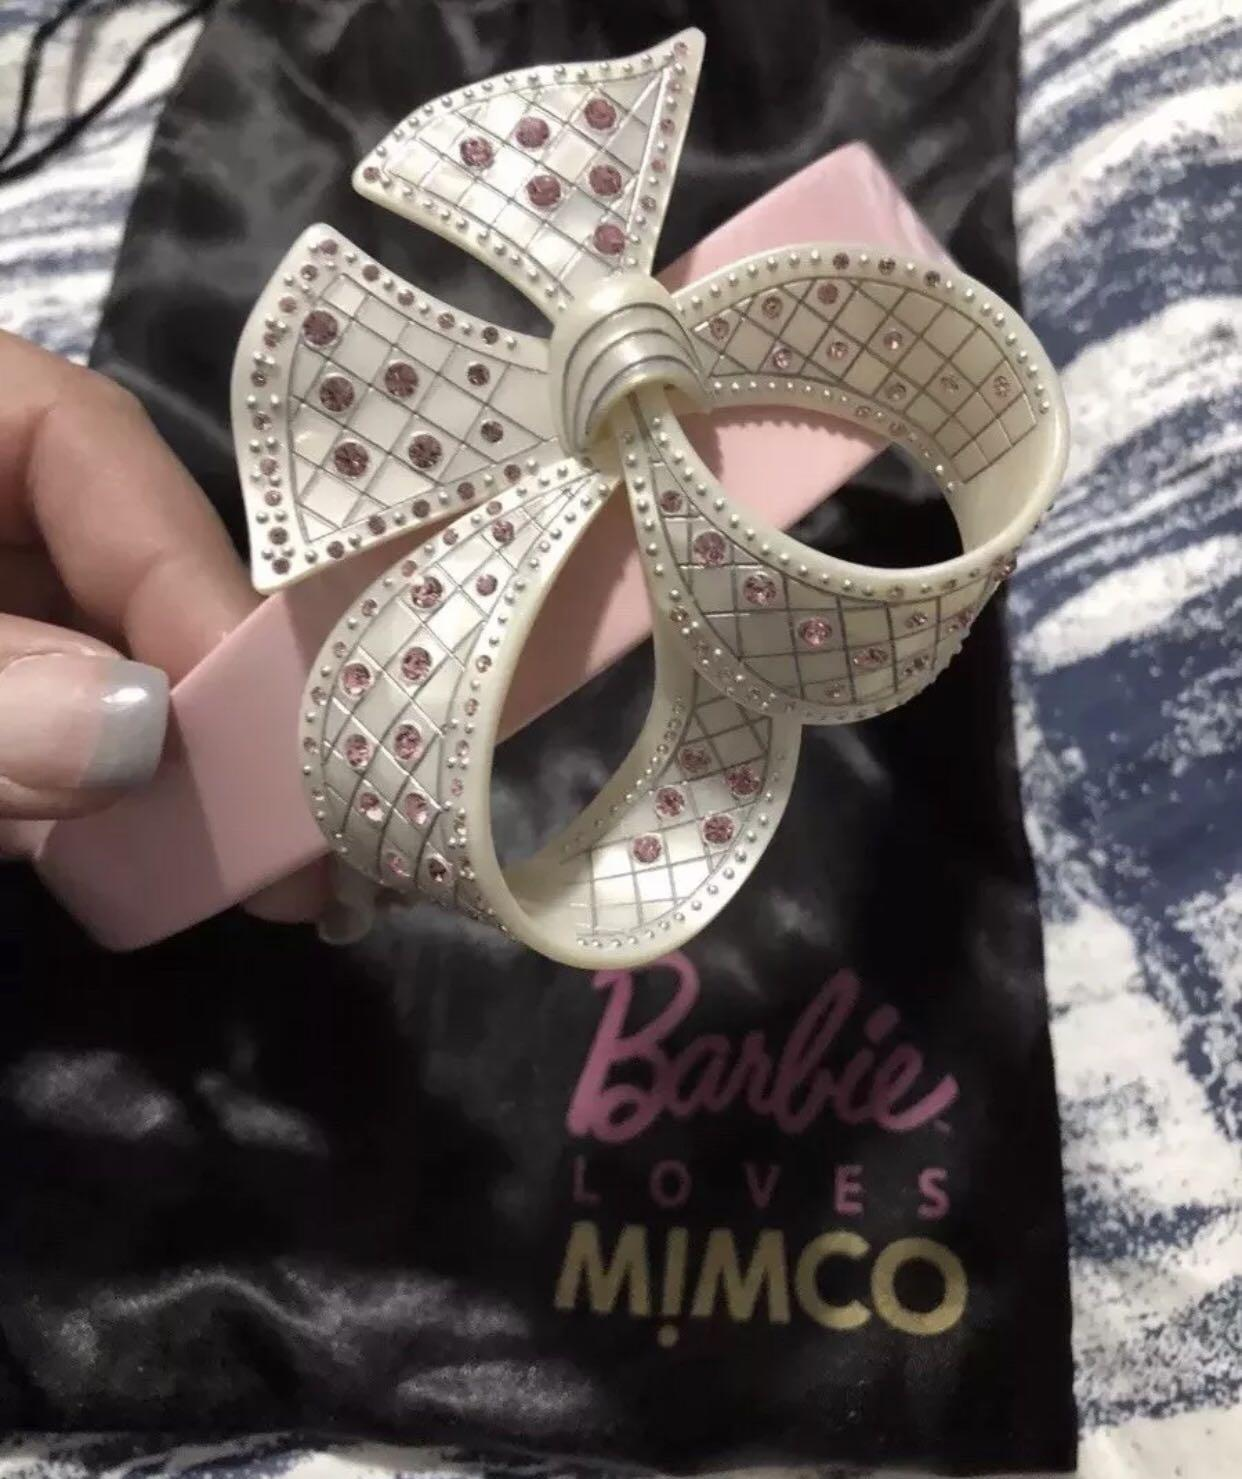 Mimco Loves Barbie Headbands and Cuff Collectors Items